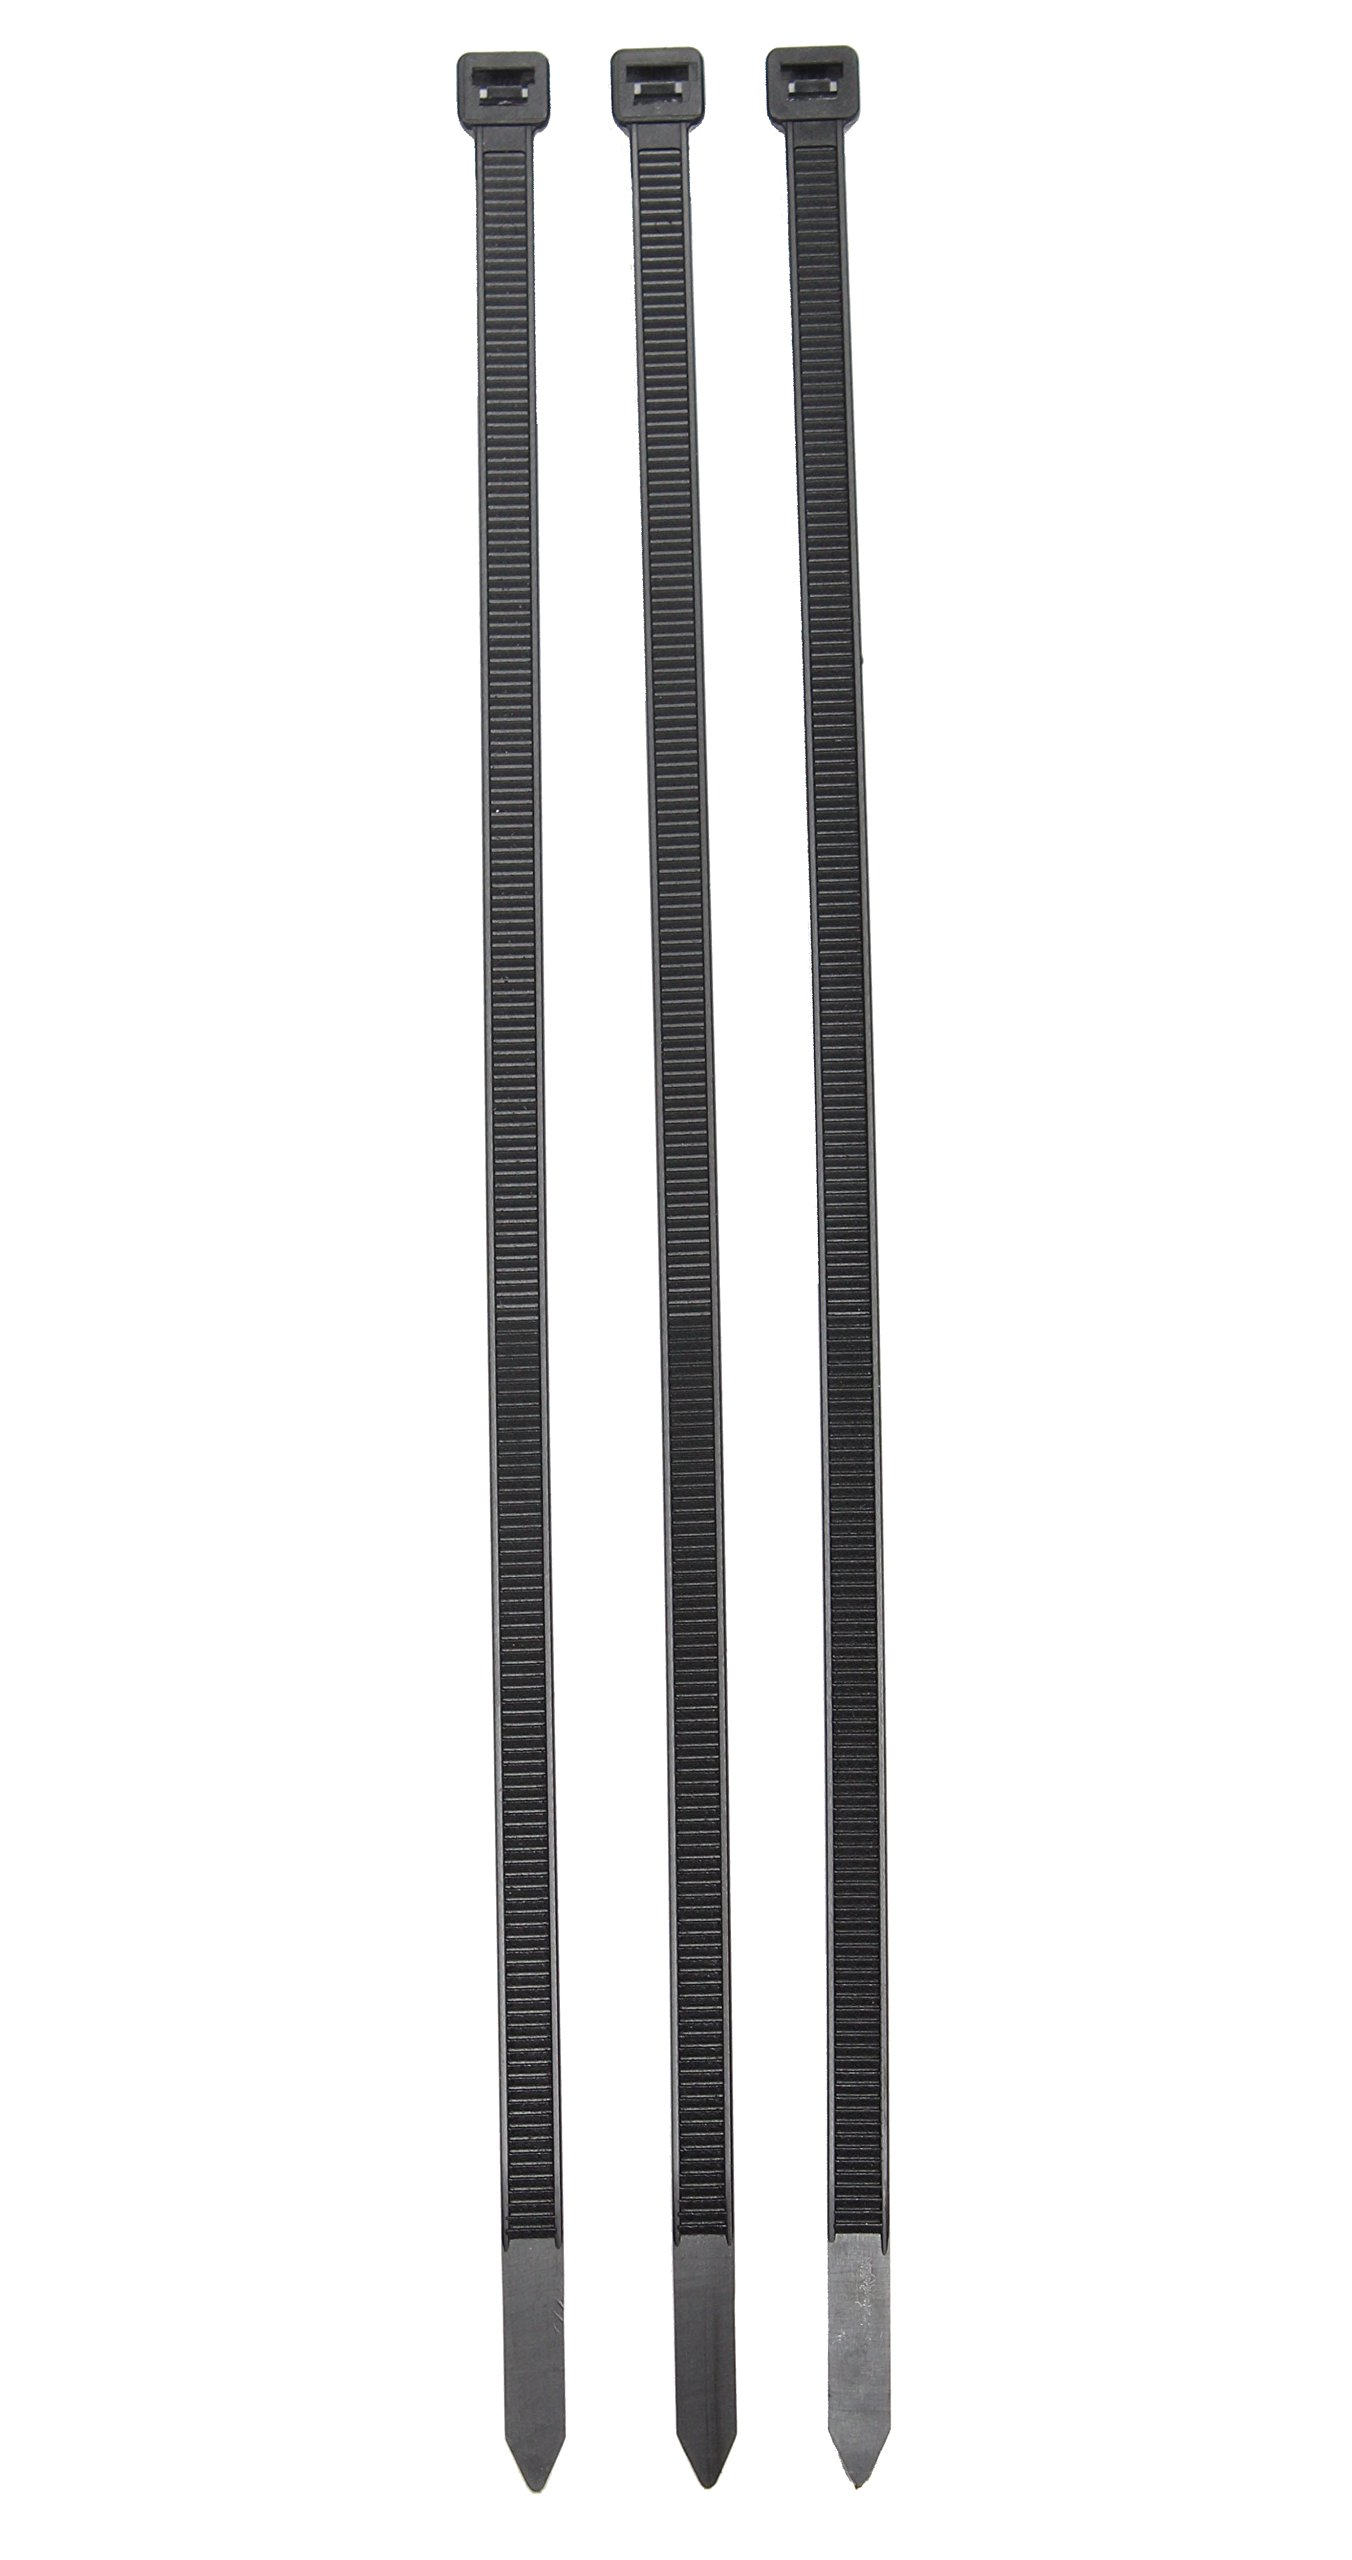 KickSpark Cable Ties Heavy Duty | 8 Inch Self Locking Nylon Zip Ties (100 Pack) | 122lbs Tensile Strength - Extra Durable | Weatherproof/UV Resistant | Wire/Cord Management by KickSpark (Image #2)